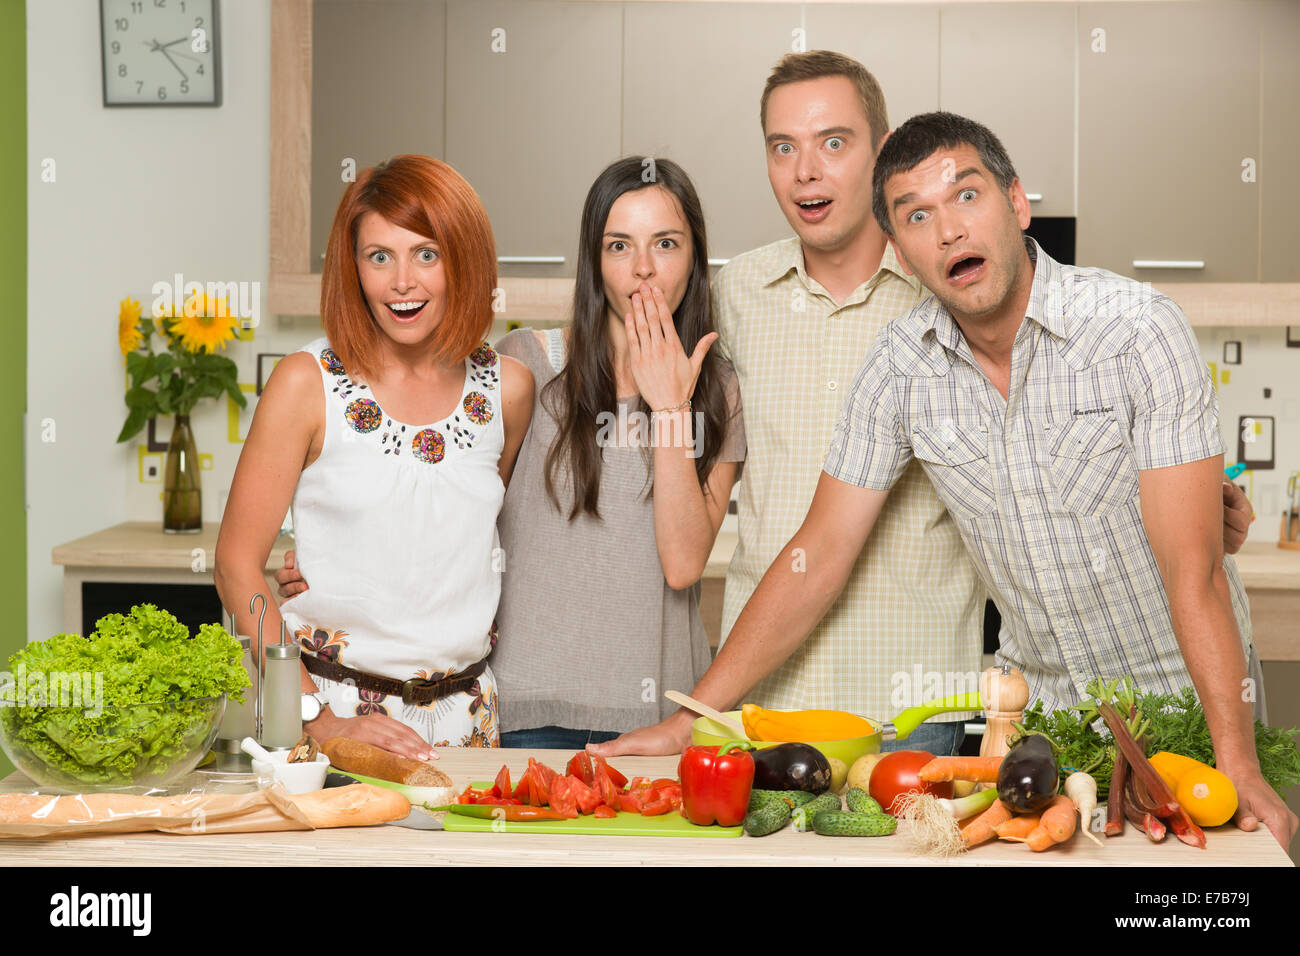 portrait of four young caucasian people standing in kitchen, table with colorful mixed vegetables, acting surprised - Stock Image